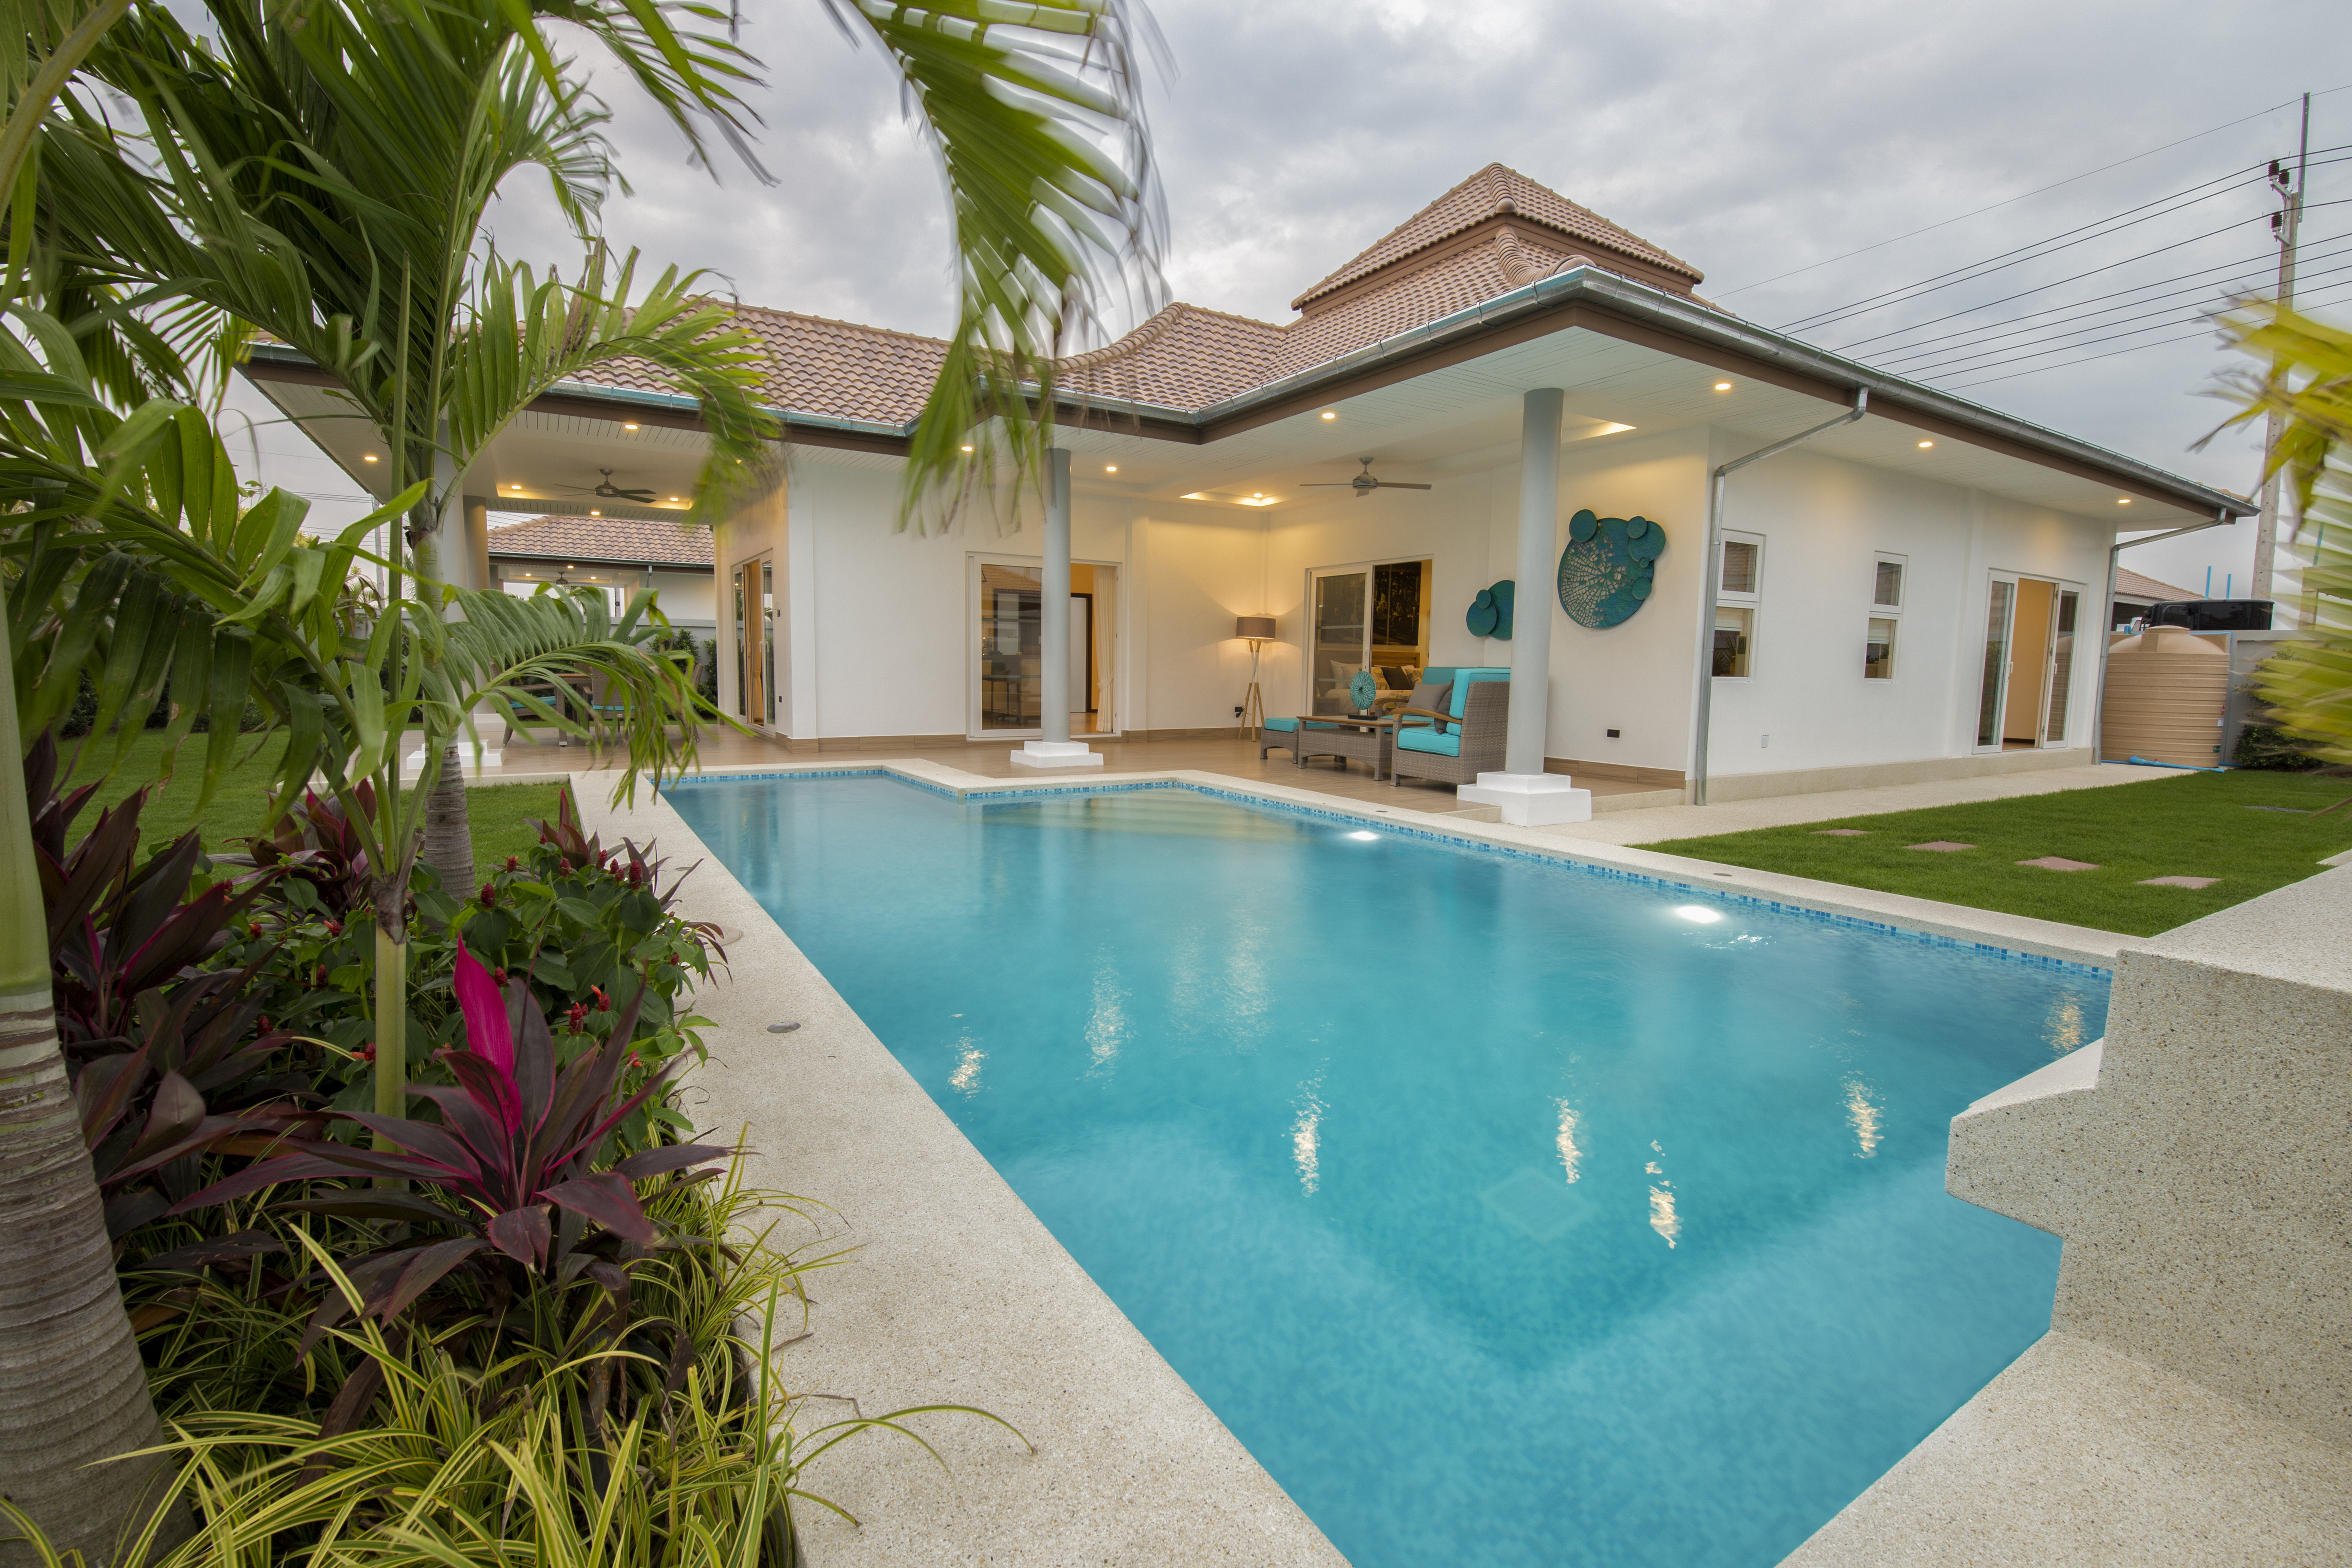 Luxury Pool Villas a really stunning location which must be seen.